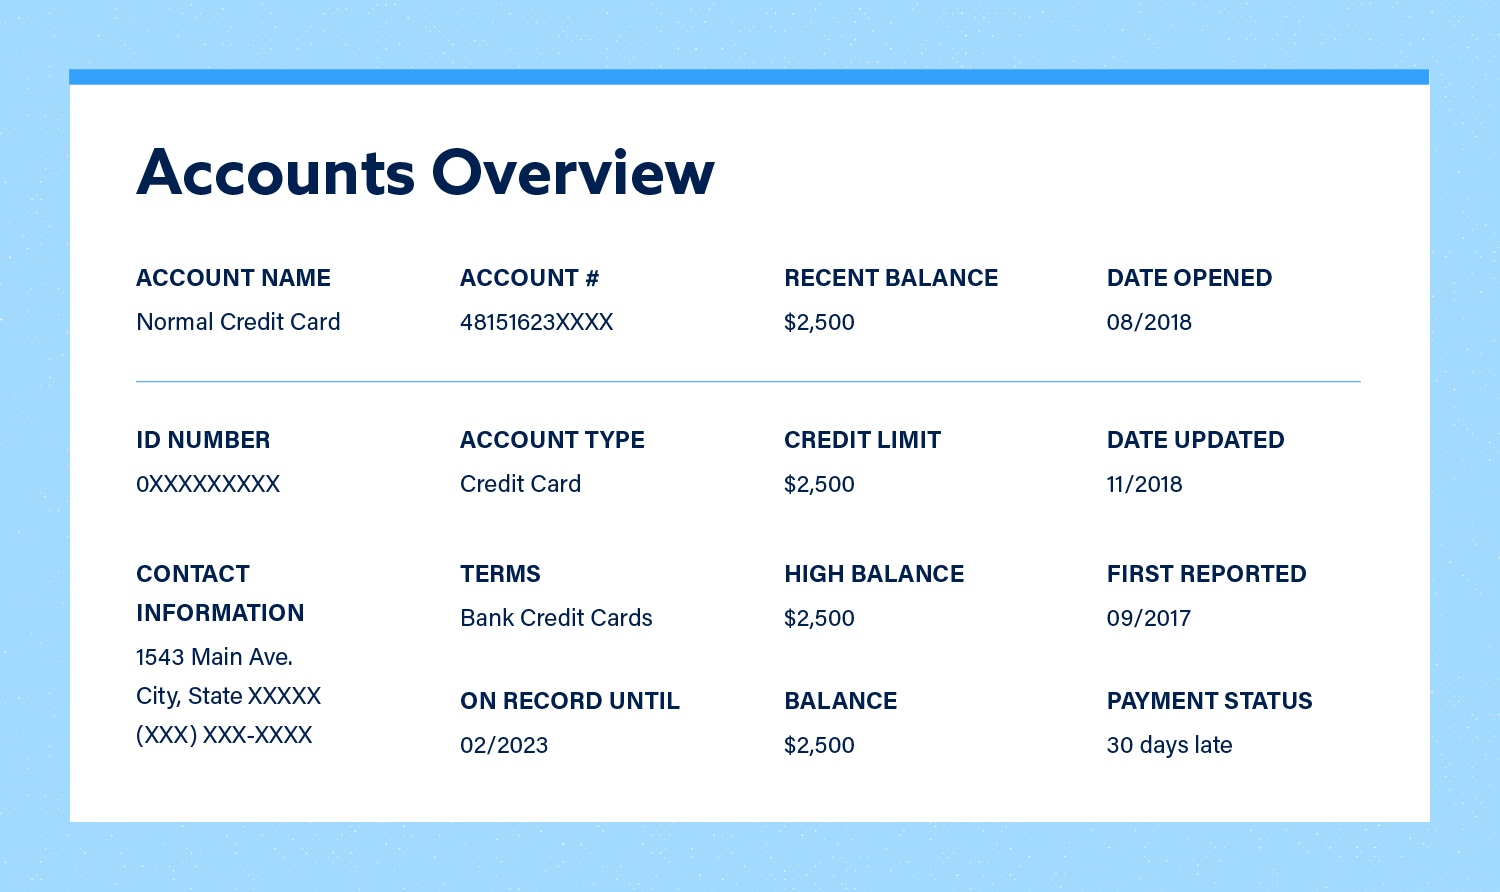 Accounts Overview Image